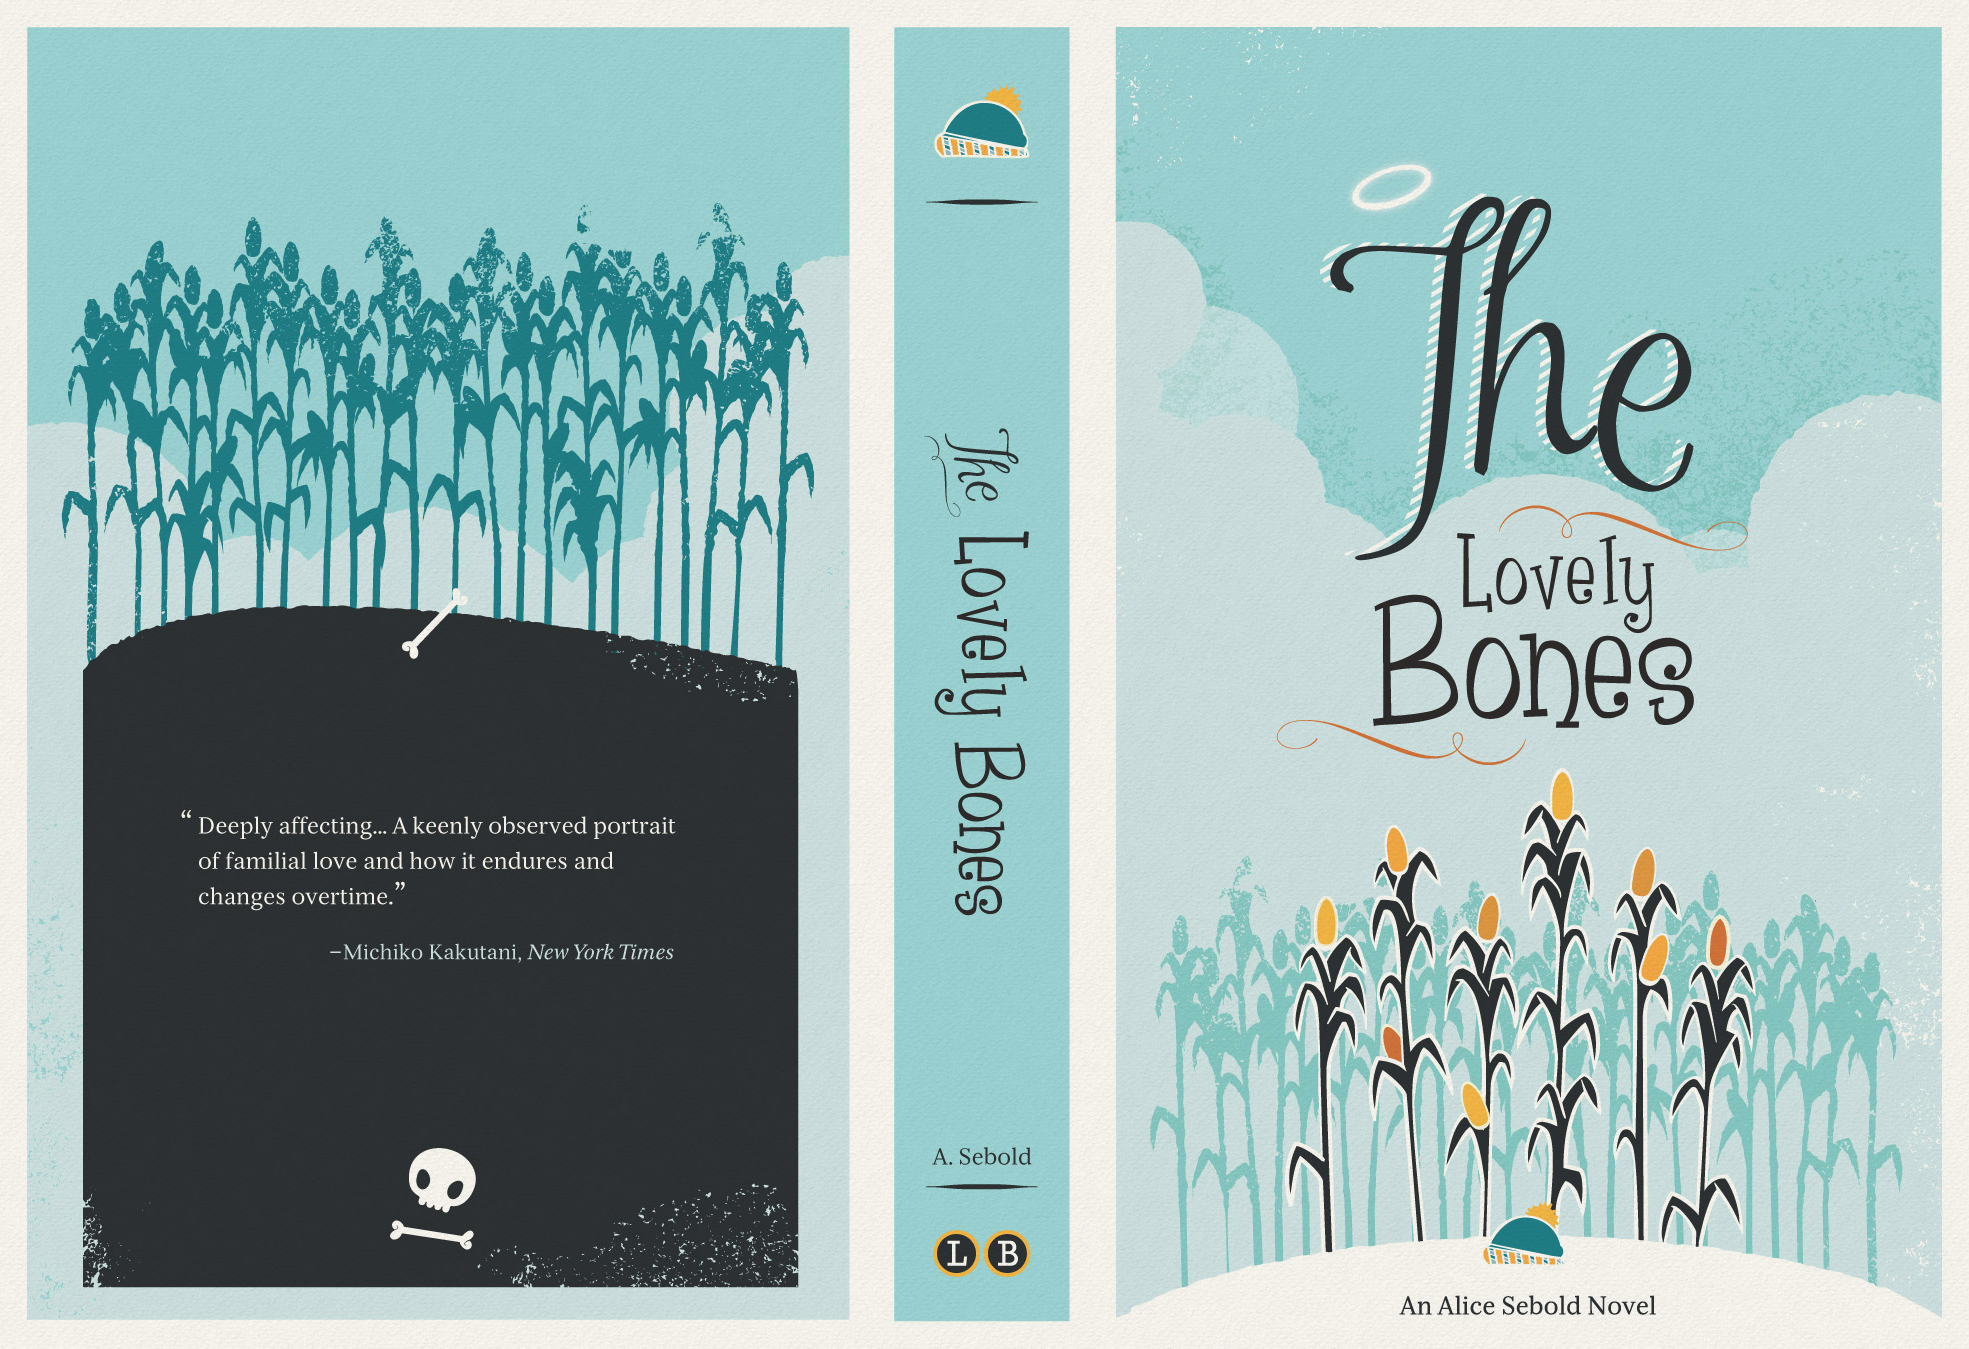 the lovely bones book cover by melito on   the lovely bones book cover by melito